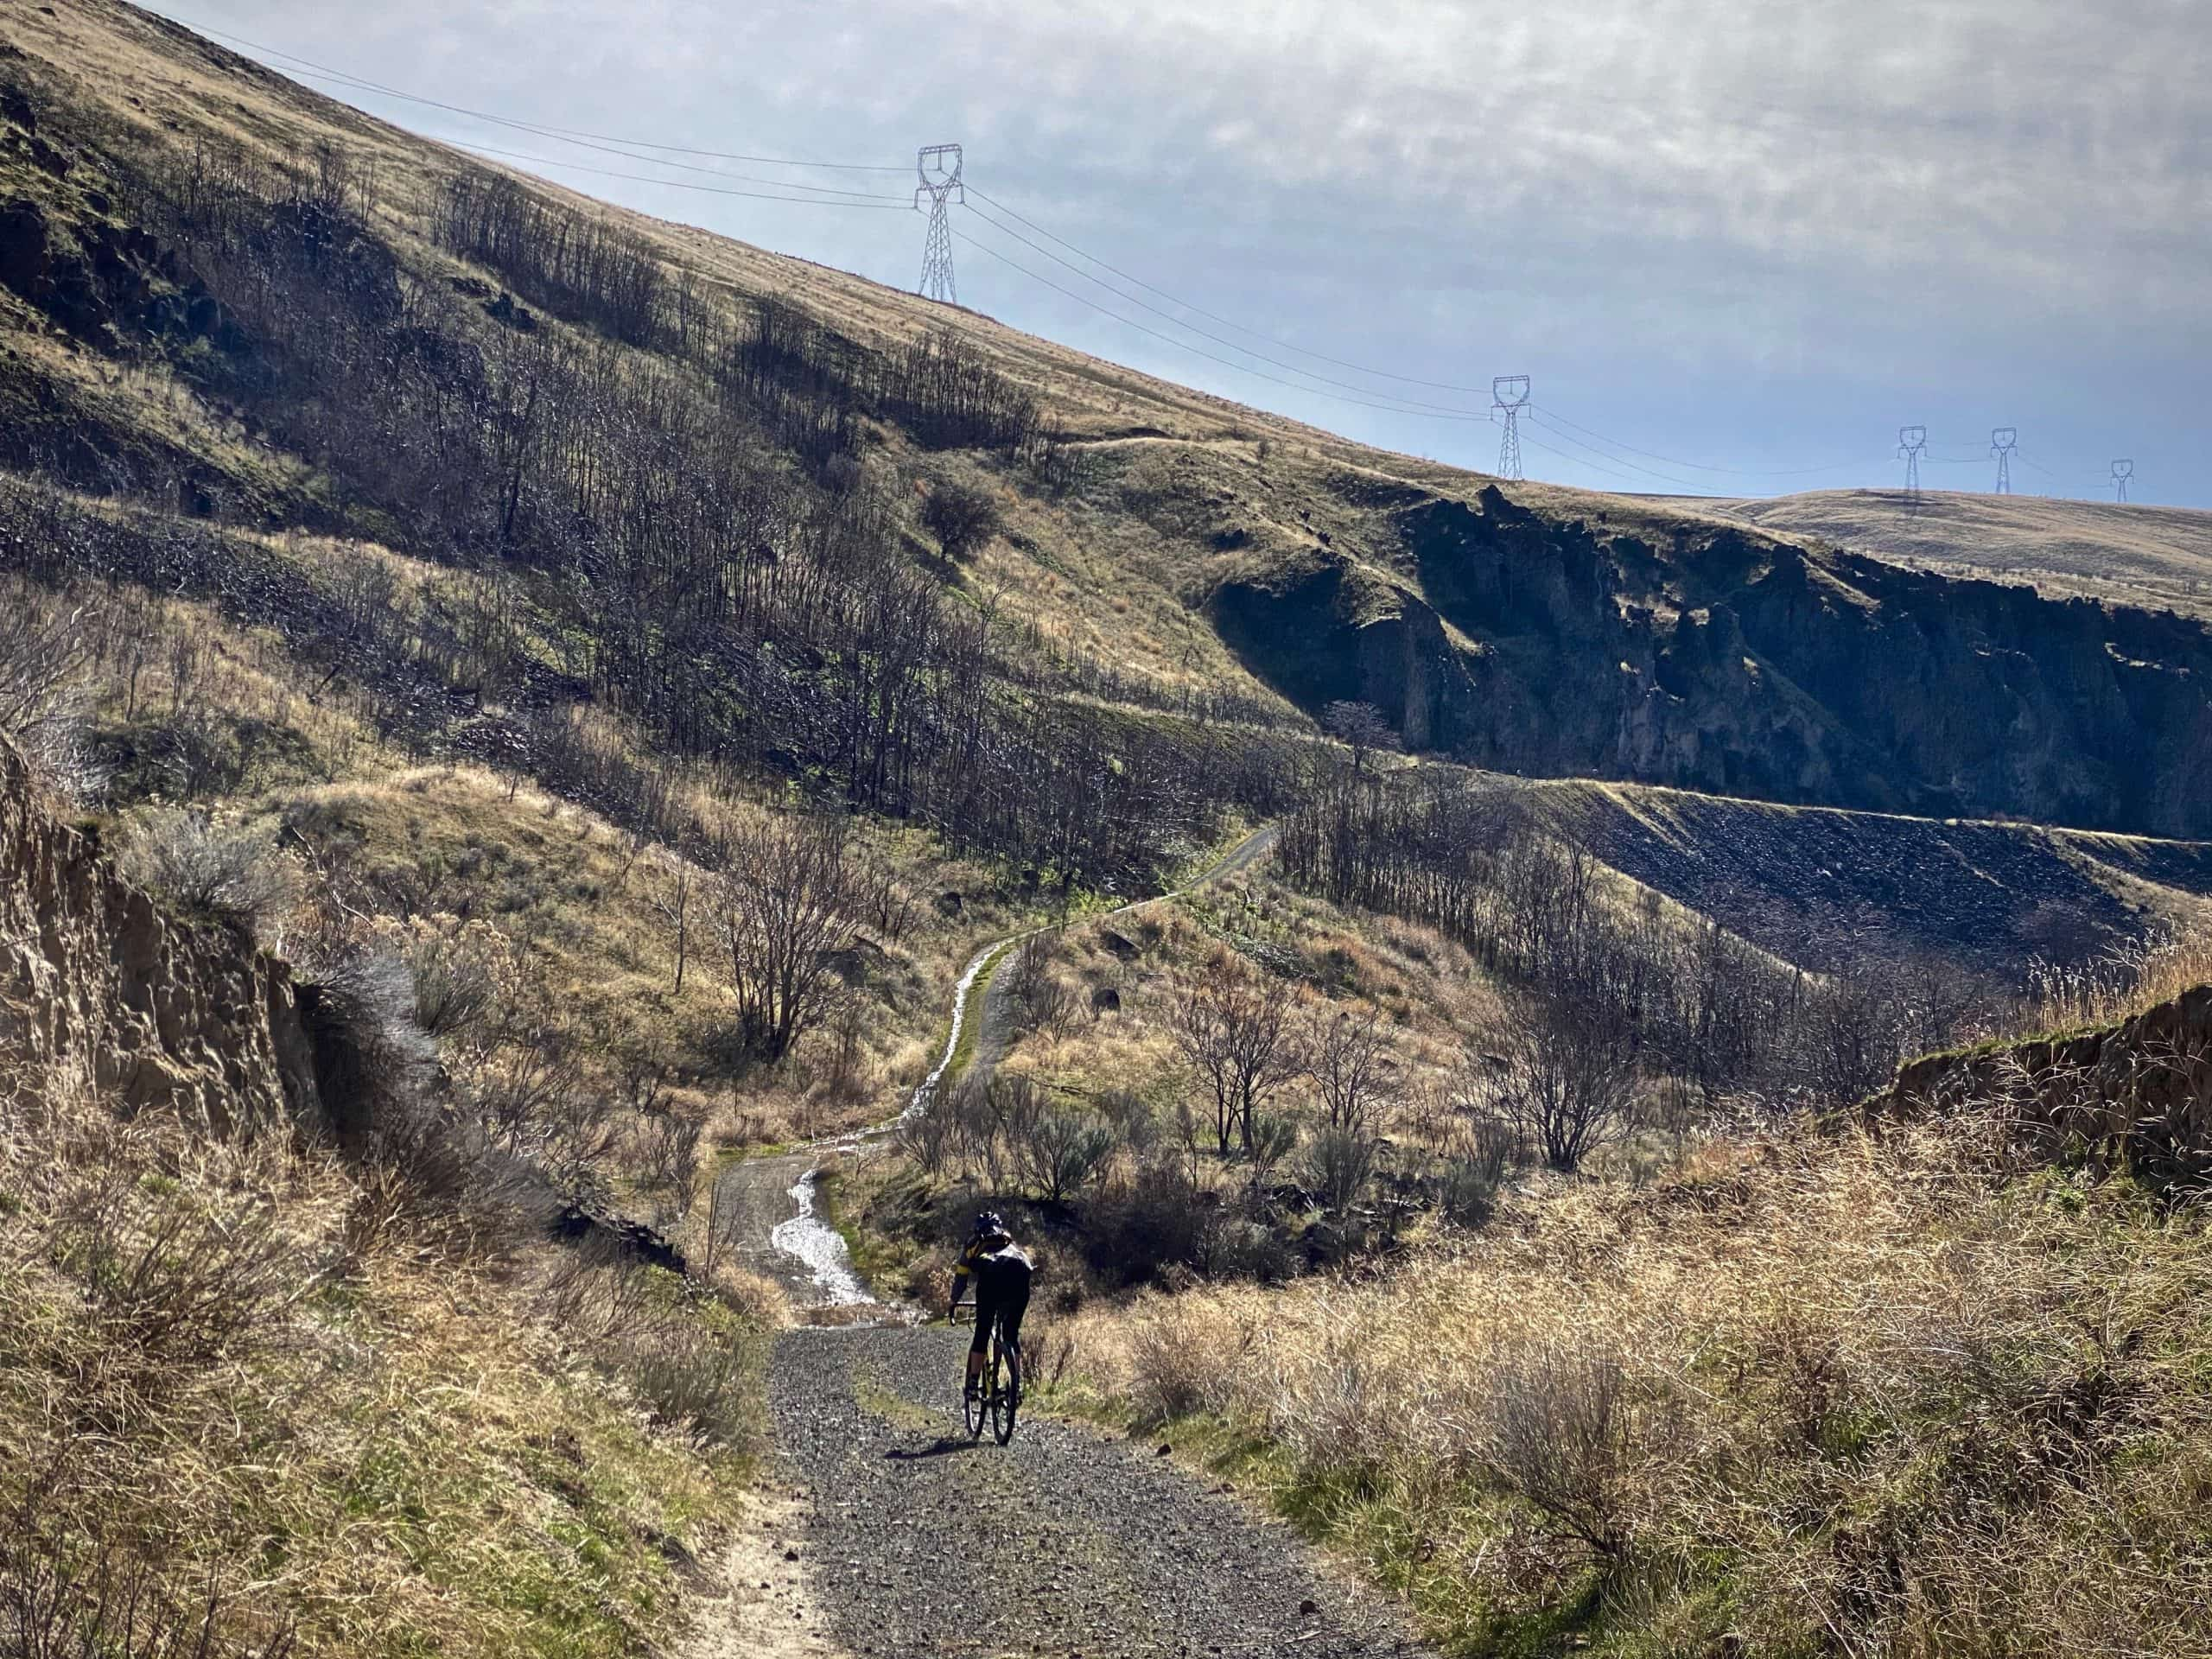 Cyclist dropping into a dip on the gravel trail along the Deschutes River.